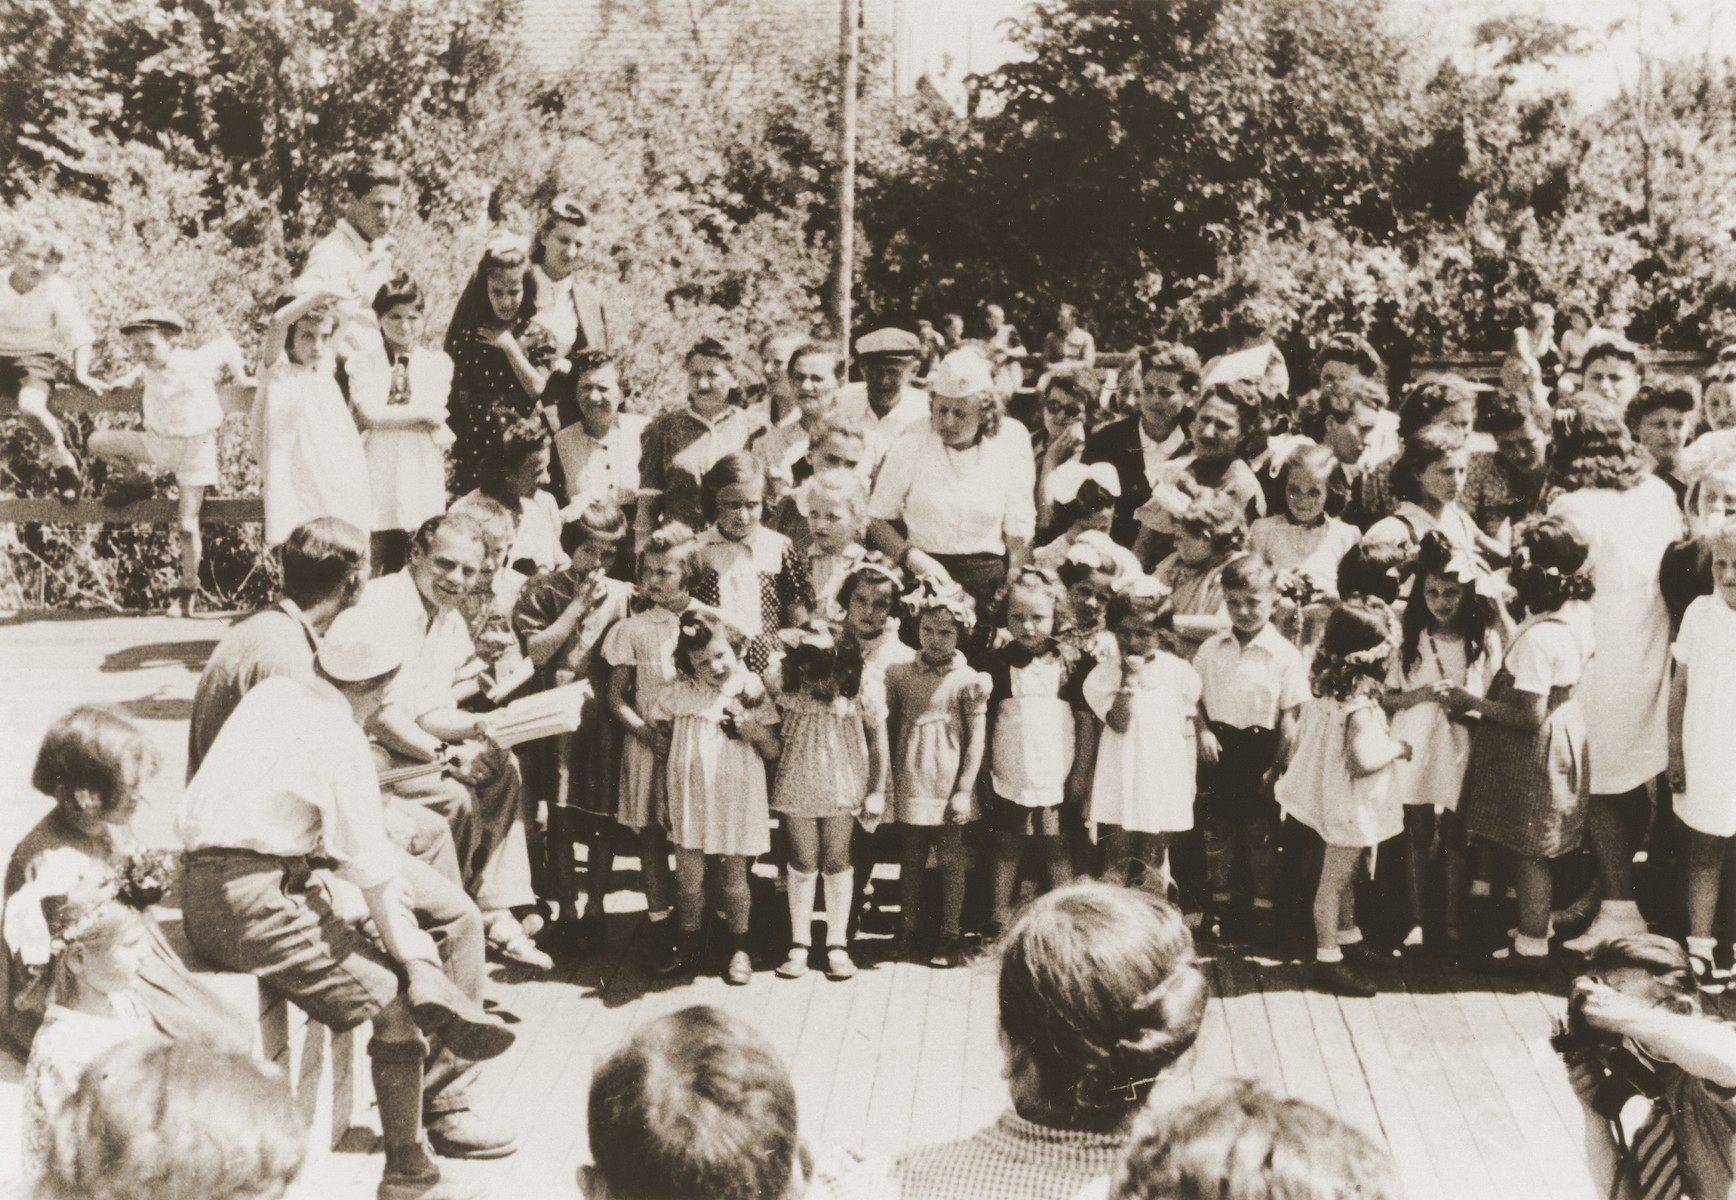 Kindergarten children in the Neu Freimann displaced persons camp give an outdoor performance.